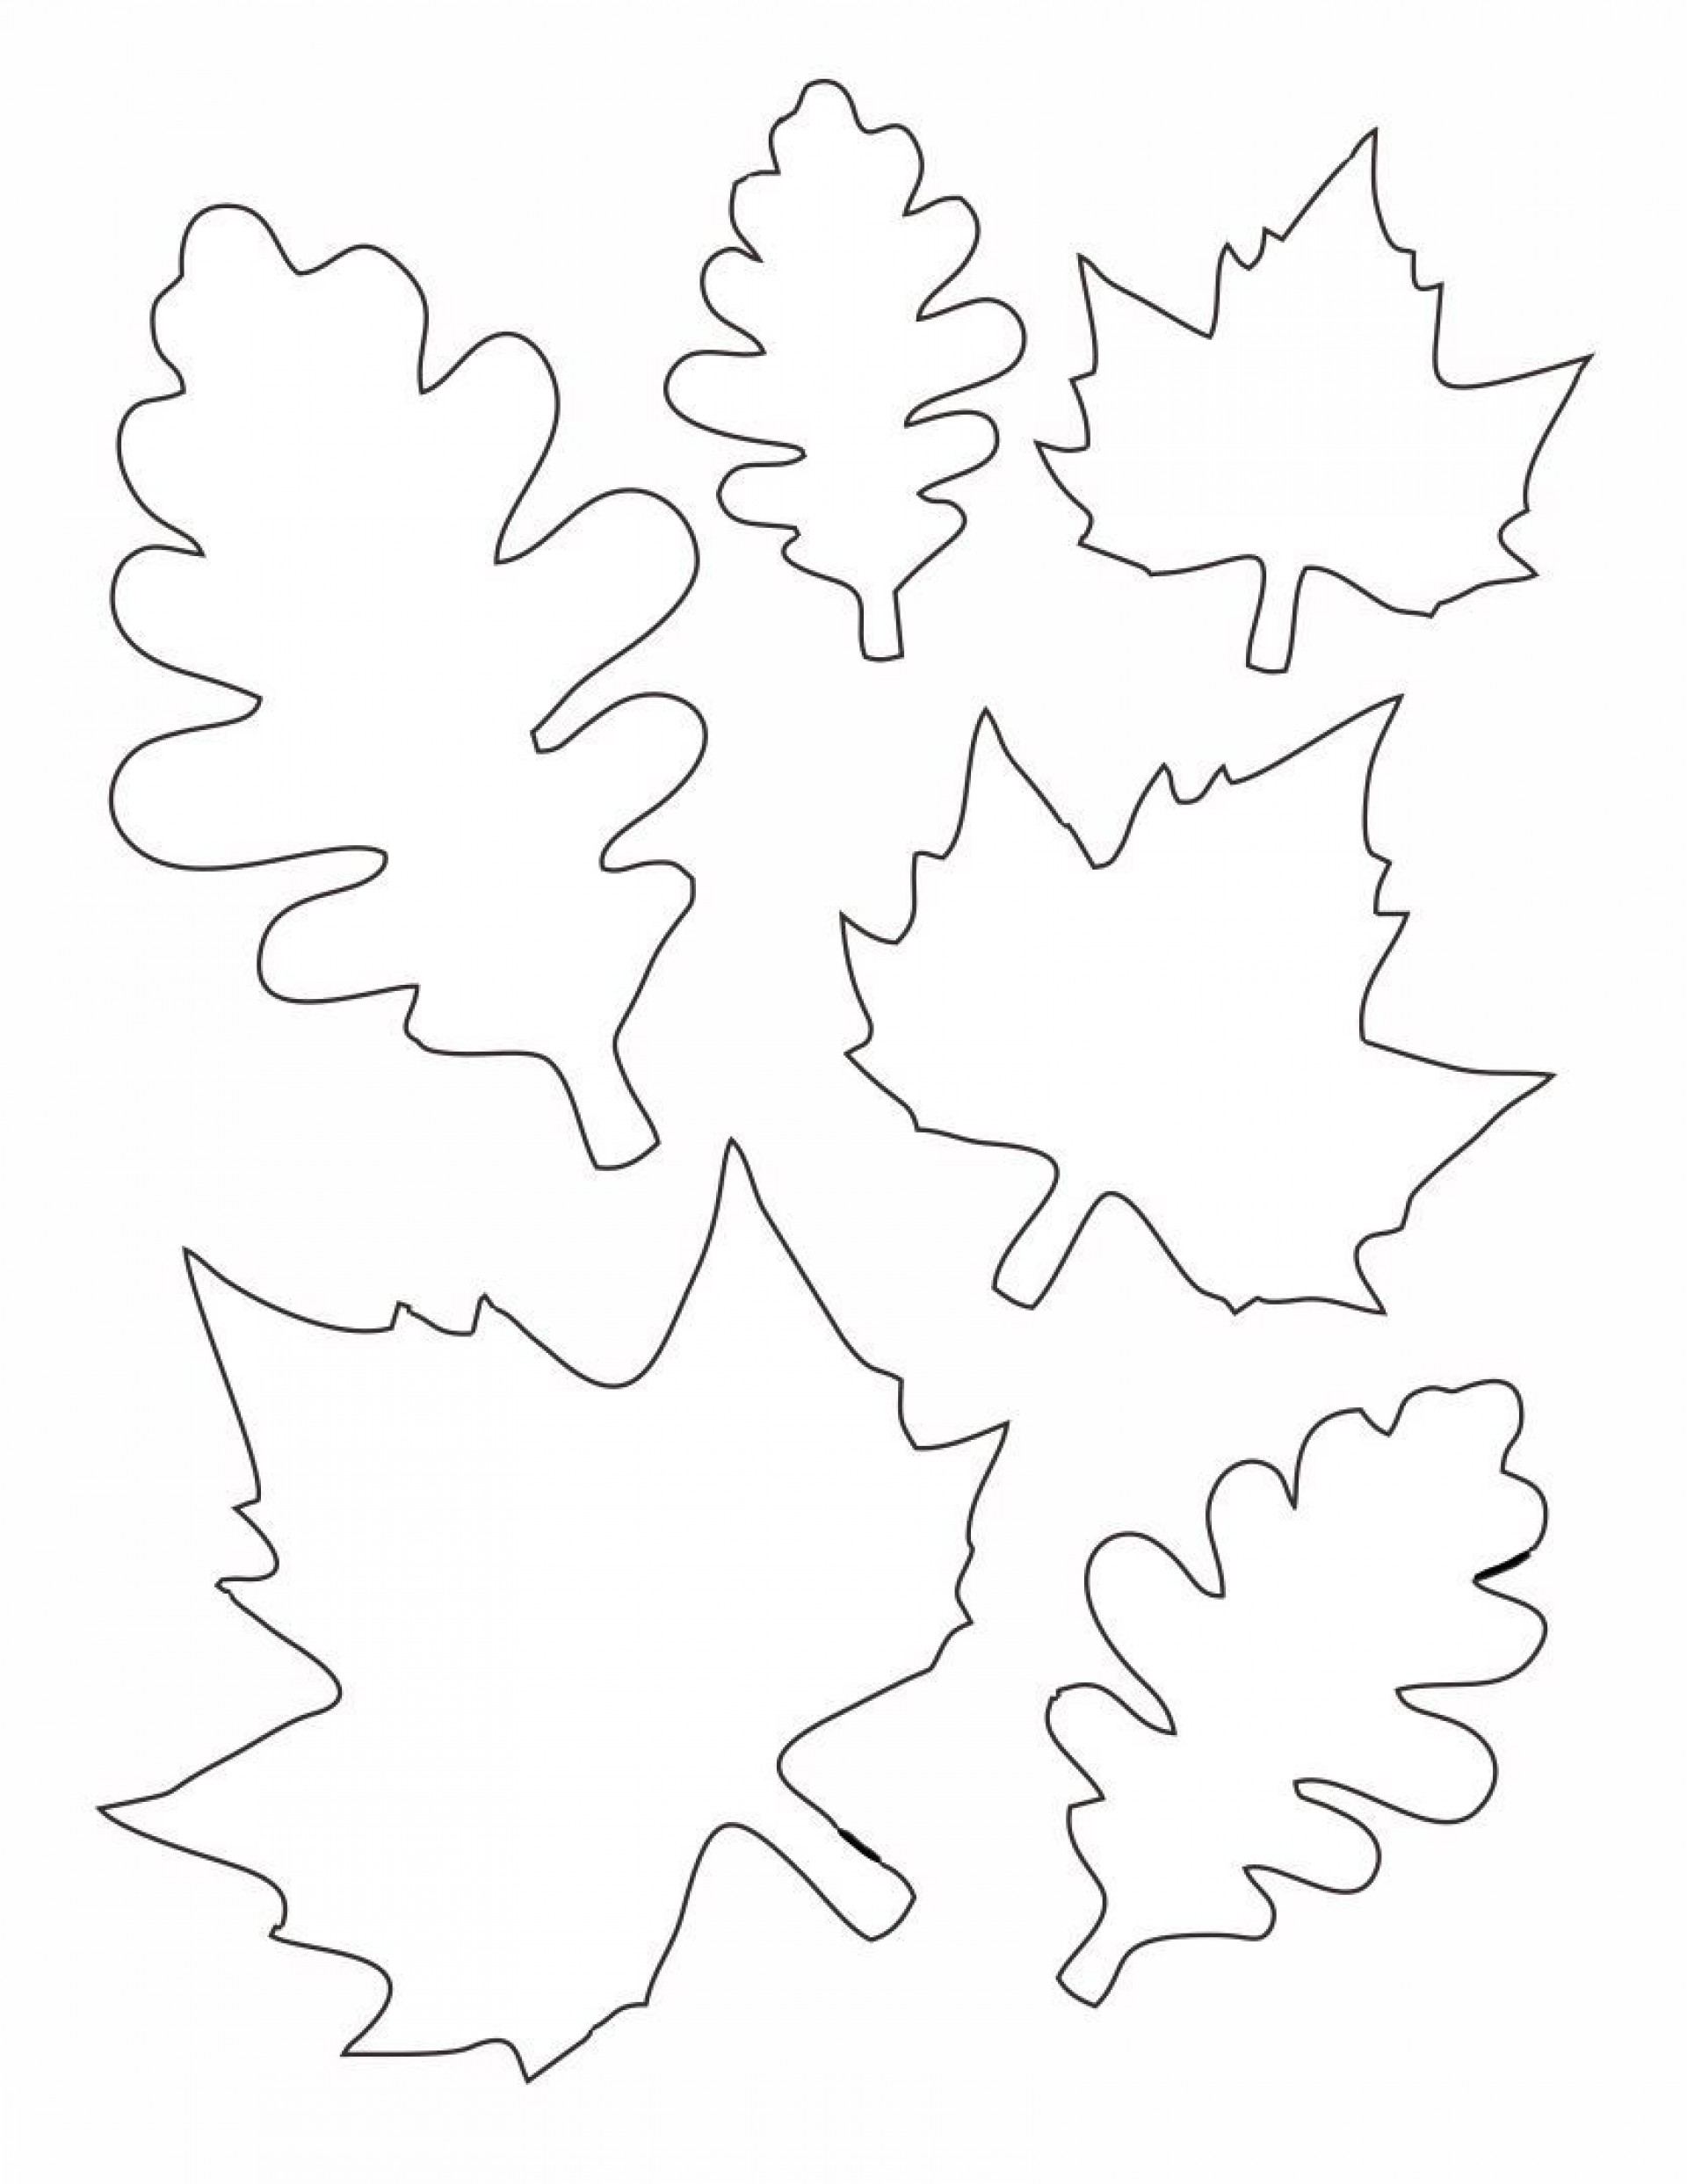 010 Unique Blank Leaf Template With Line Inspiration  Lines Printable1920